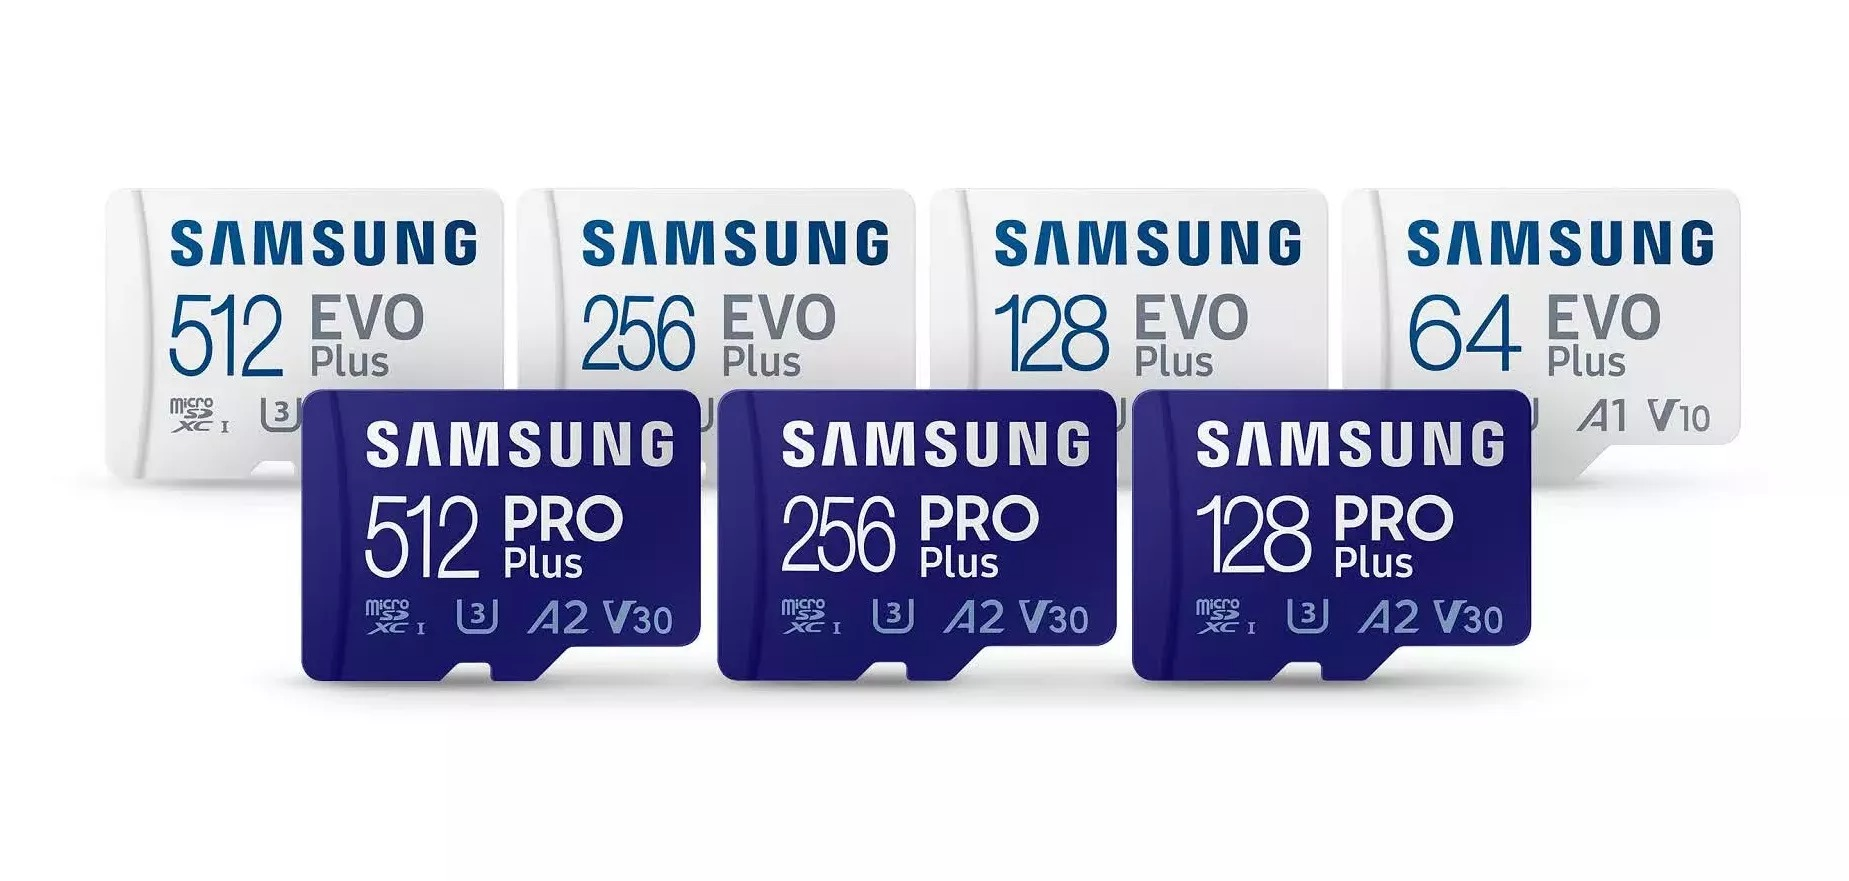 Samsung reveals its latest microSD and SD cards, now faster and more durable